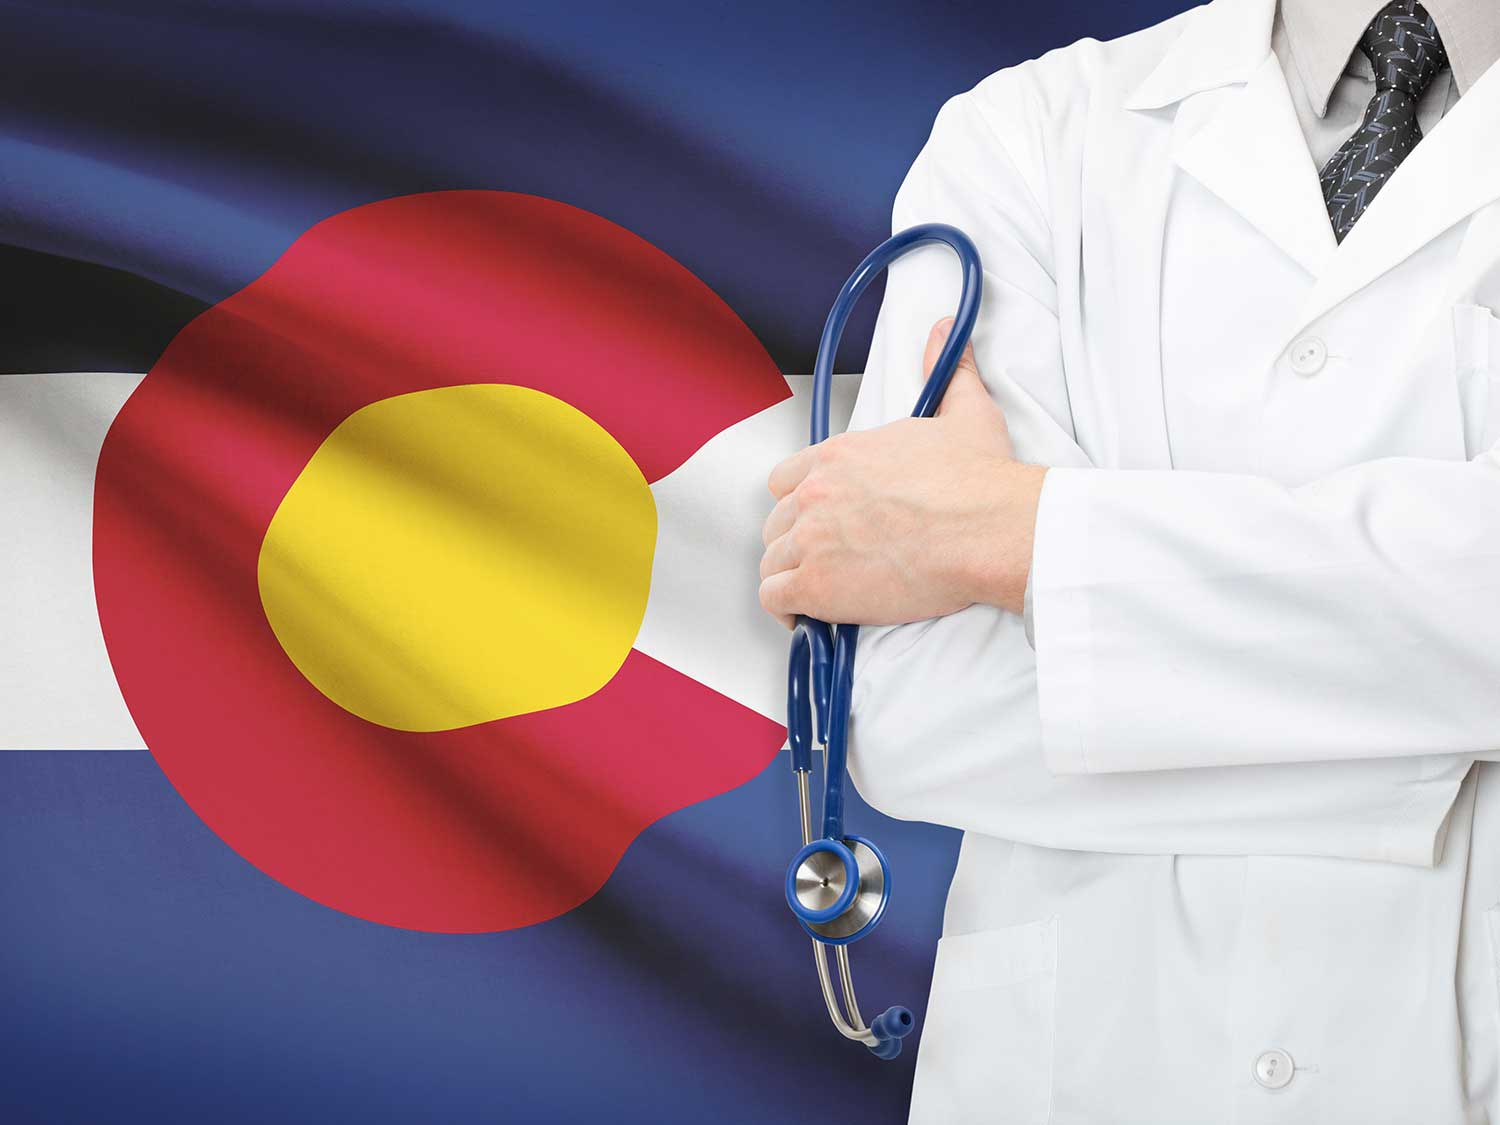 Doctor With Medical Malpractice Insurance Standing In Front Of Colorado State Flag Holding Stethoscope